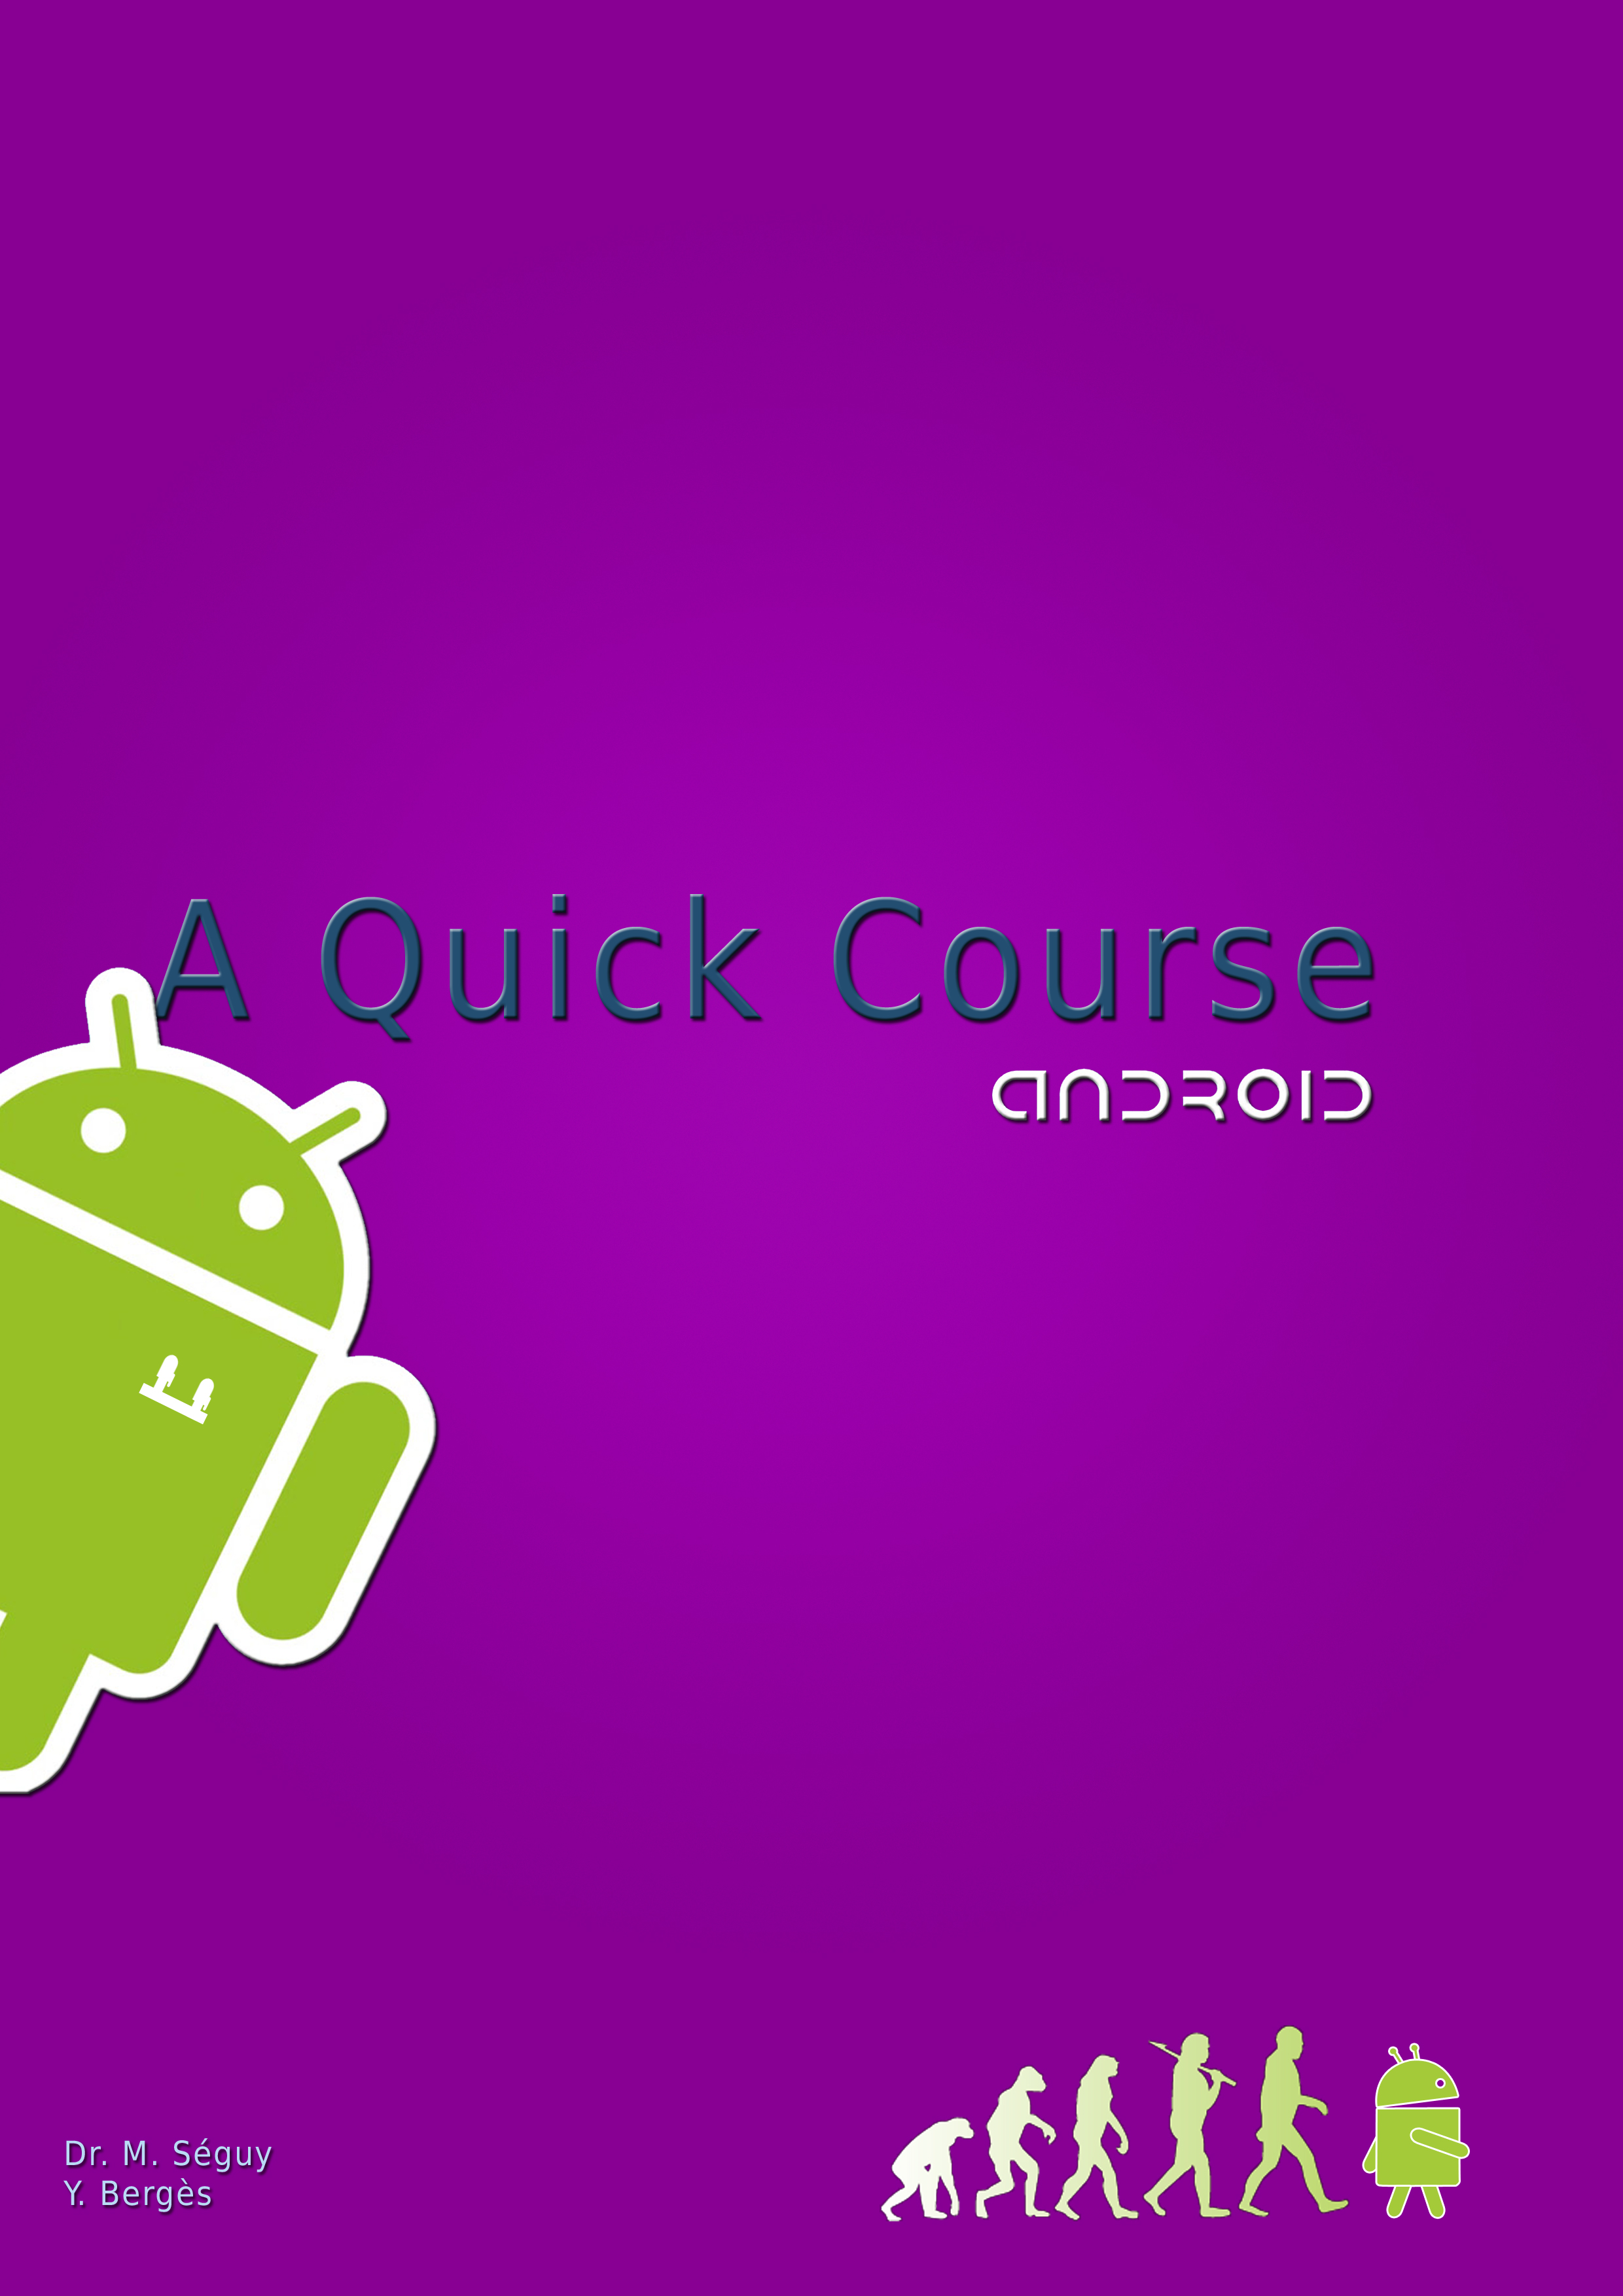 couv-quick-course